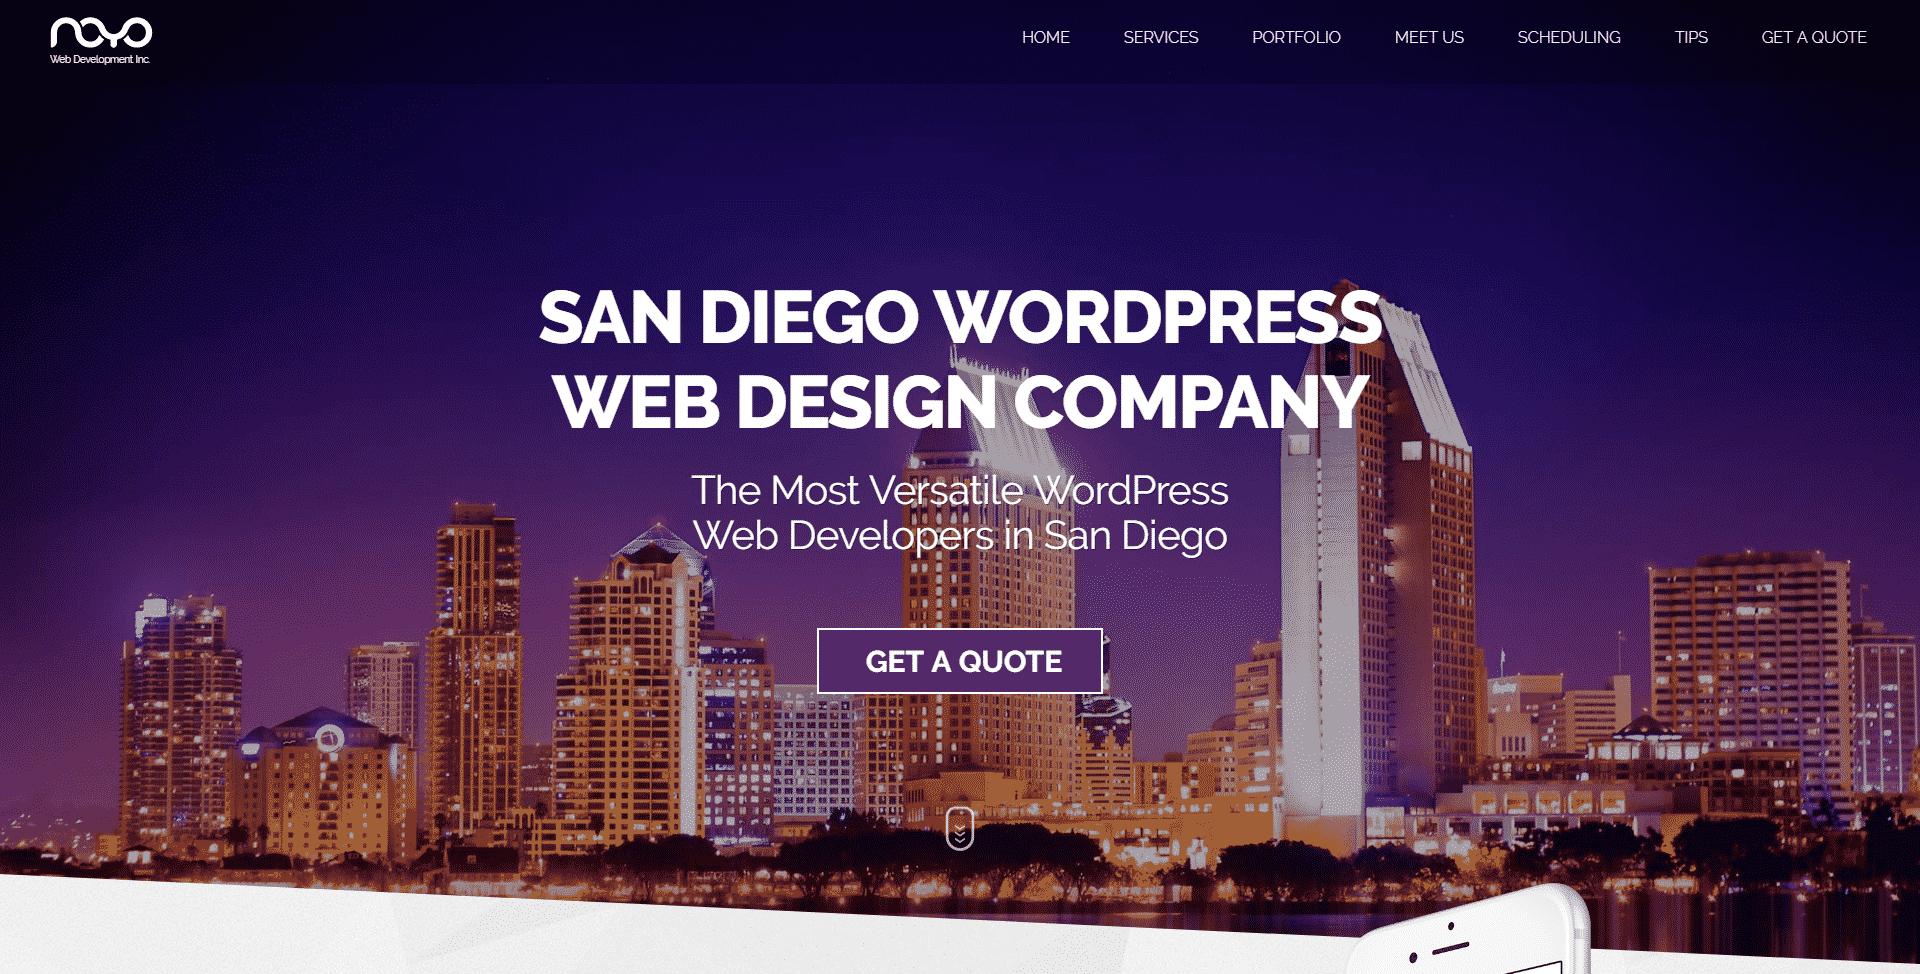 #1 San Diego WordPress Web Design, WordPress Web Developers